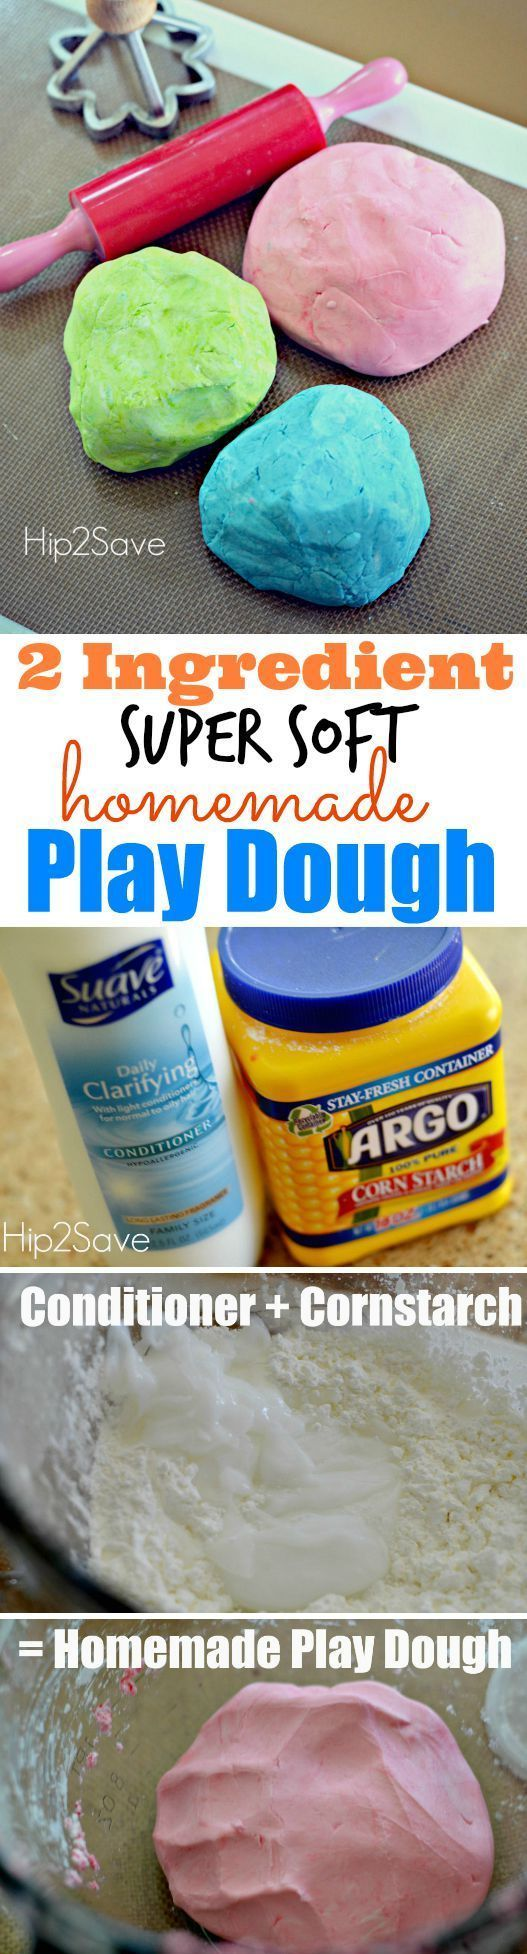 Homemade 2 Ingredient Play Dough